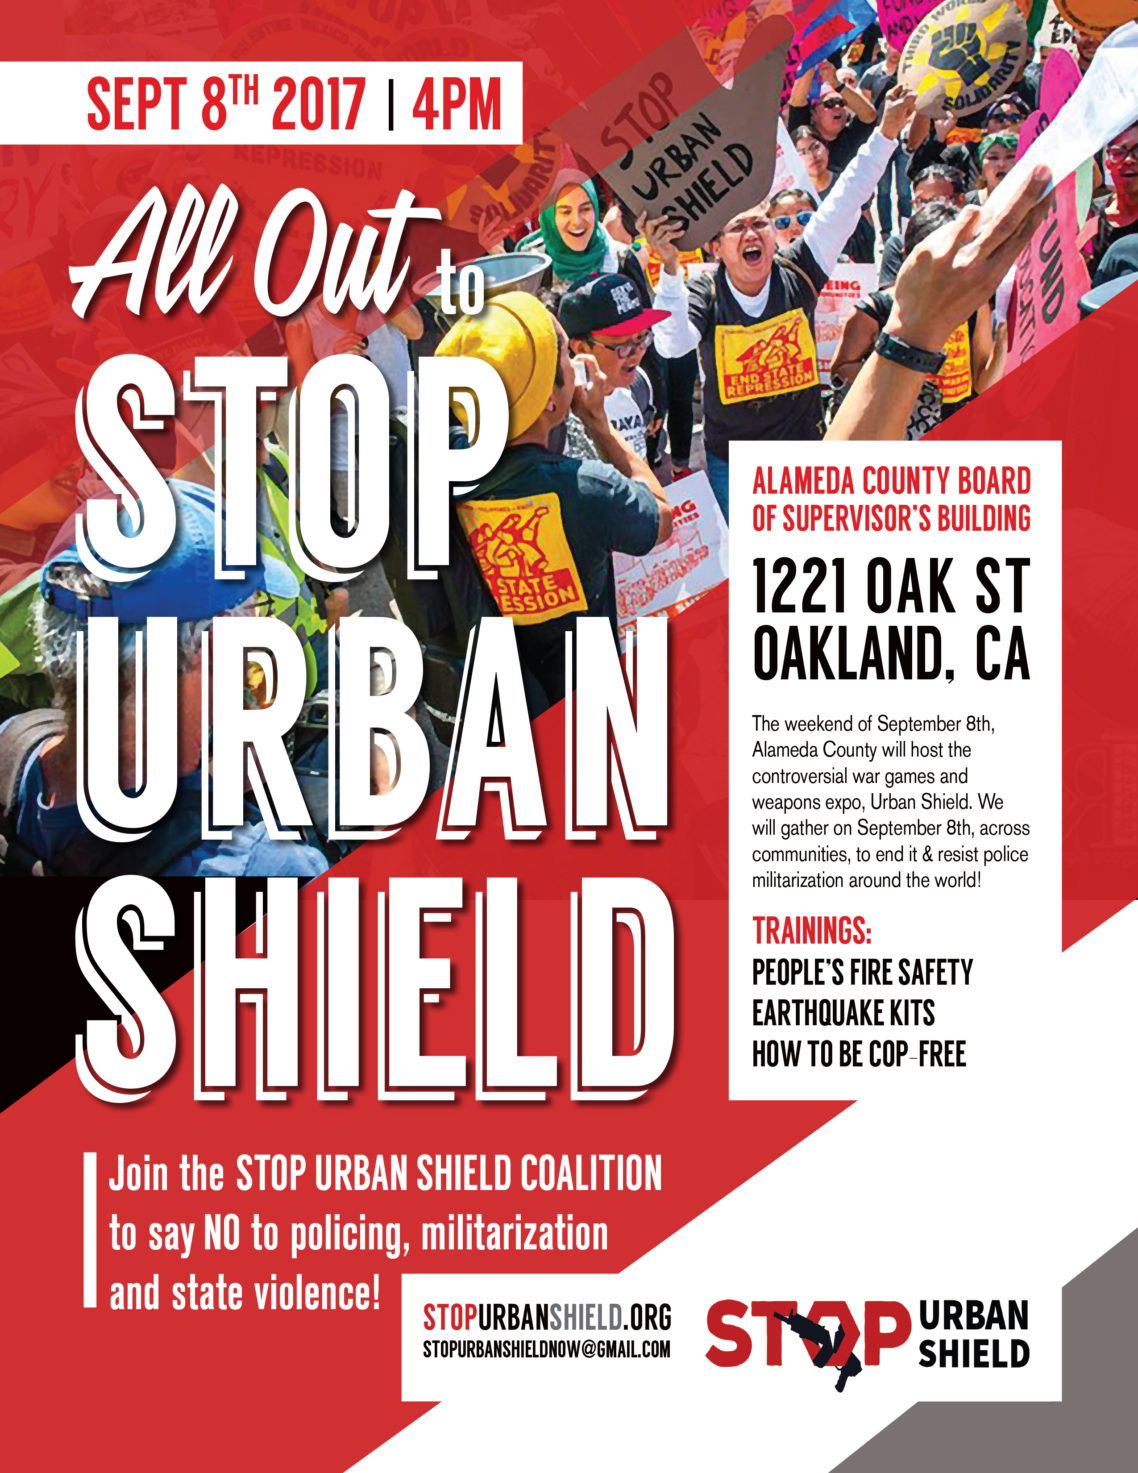 All Out to Stop Urban Shield